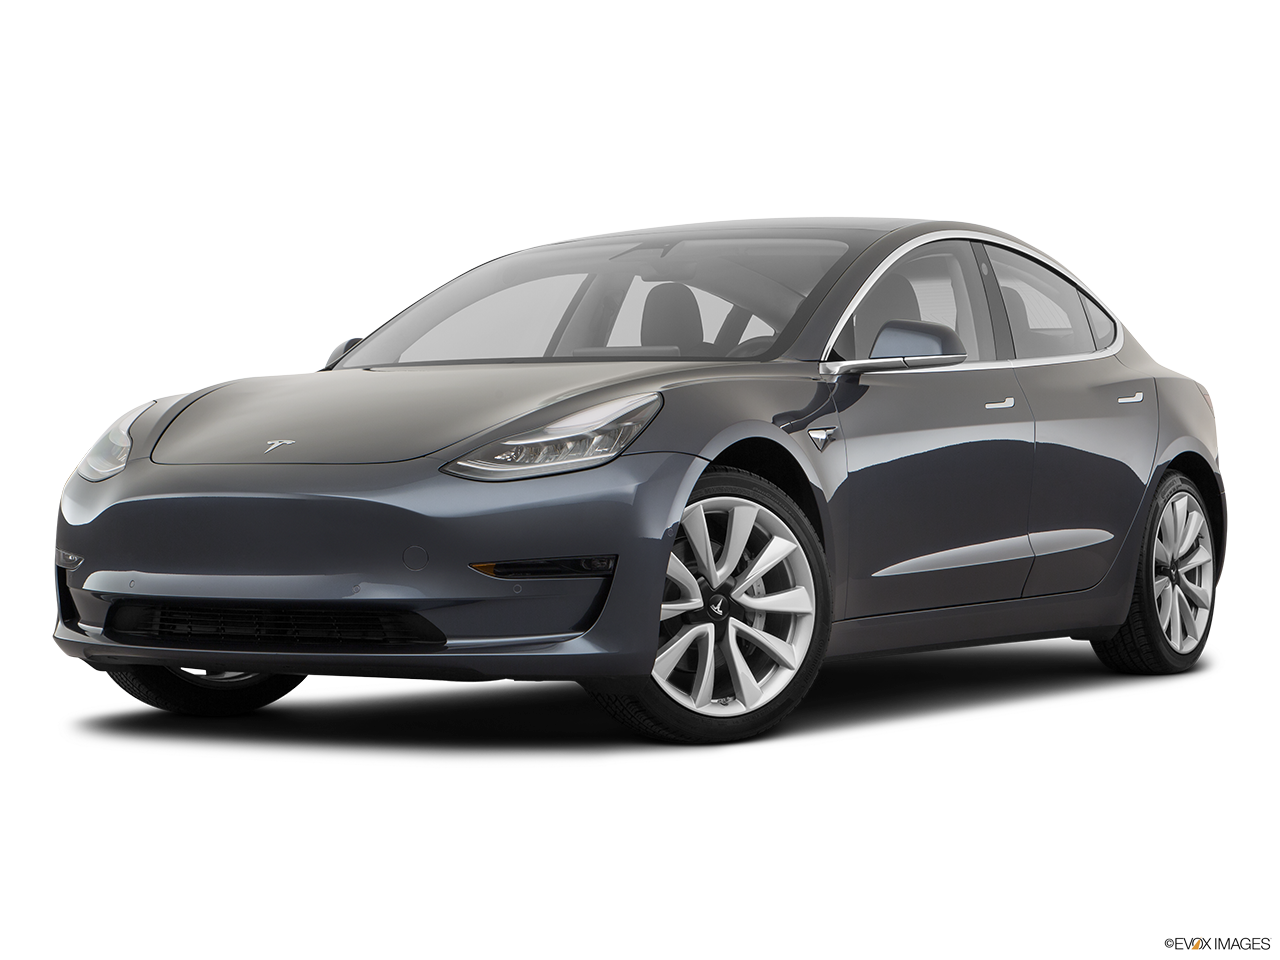 Three quart view of the Tesla Model 3